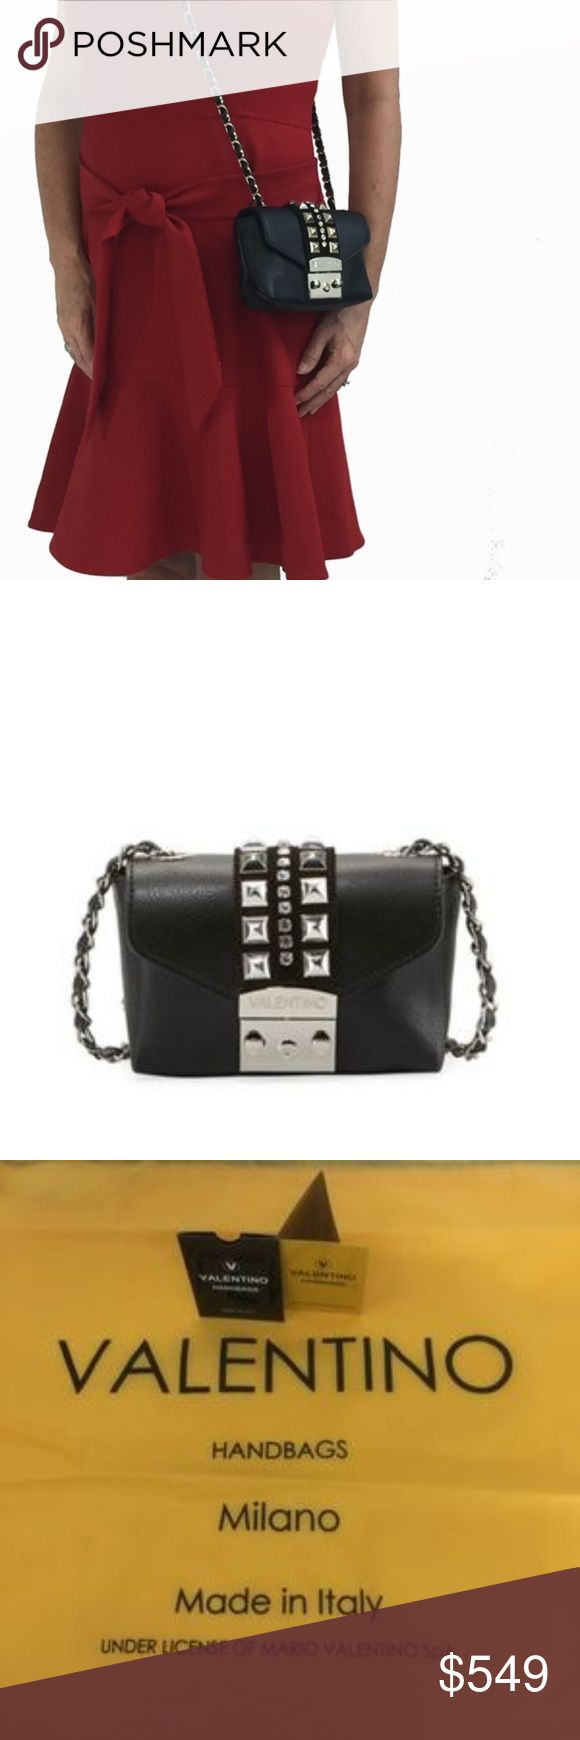 """FinalSALE Valentino Rockstud Leather Crossbody Bag Mario Valentino Palmellato grained leather and studs crossbody bag  SALE PRICE IS FIRM!  GORGEOUS, SUPPLE LEATHER, STUDS AND RHINESTONES  PERFECT FOR VALENTINE'S DAY!  Spike studs and rhinestone embellished trim Woven chain shoulder strap, 22.5"""" drop Flap top with logo-engraved slide-lock closure Interior, fabric lining Made in Italy  Dust bag, Valentino tag, Certificato Di Qualita Booklet  Buy in confidence. I am a perfect 5 STAR SELLER…"""